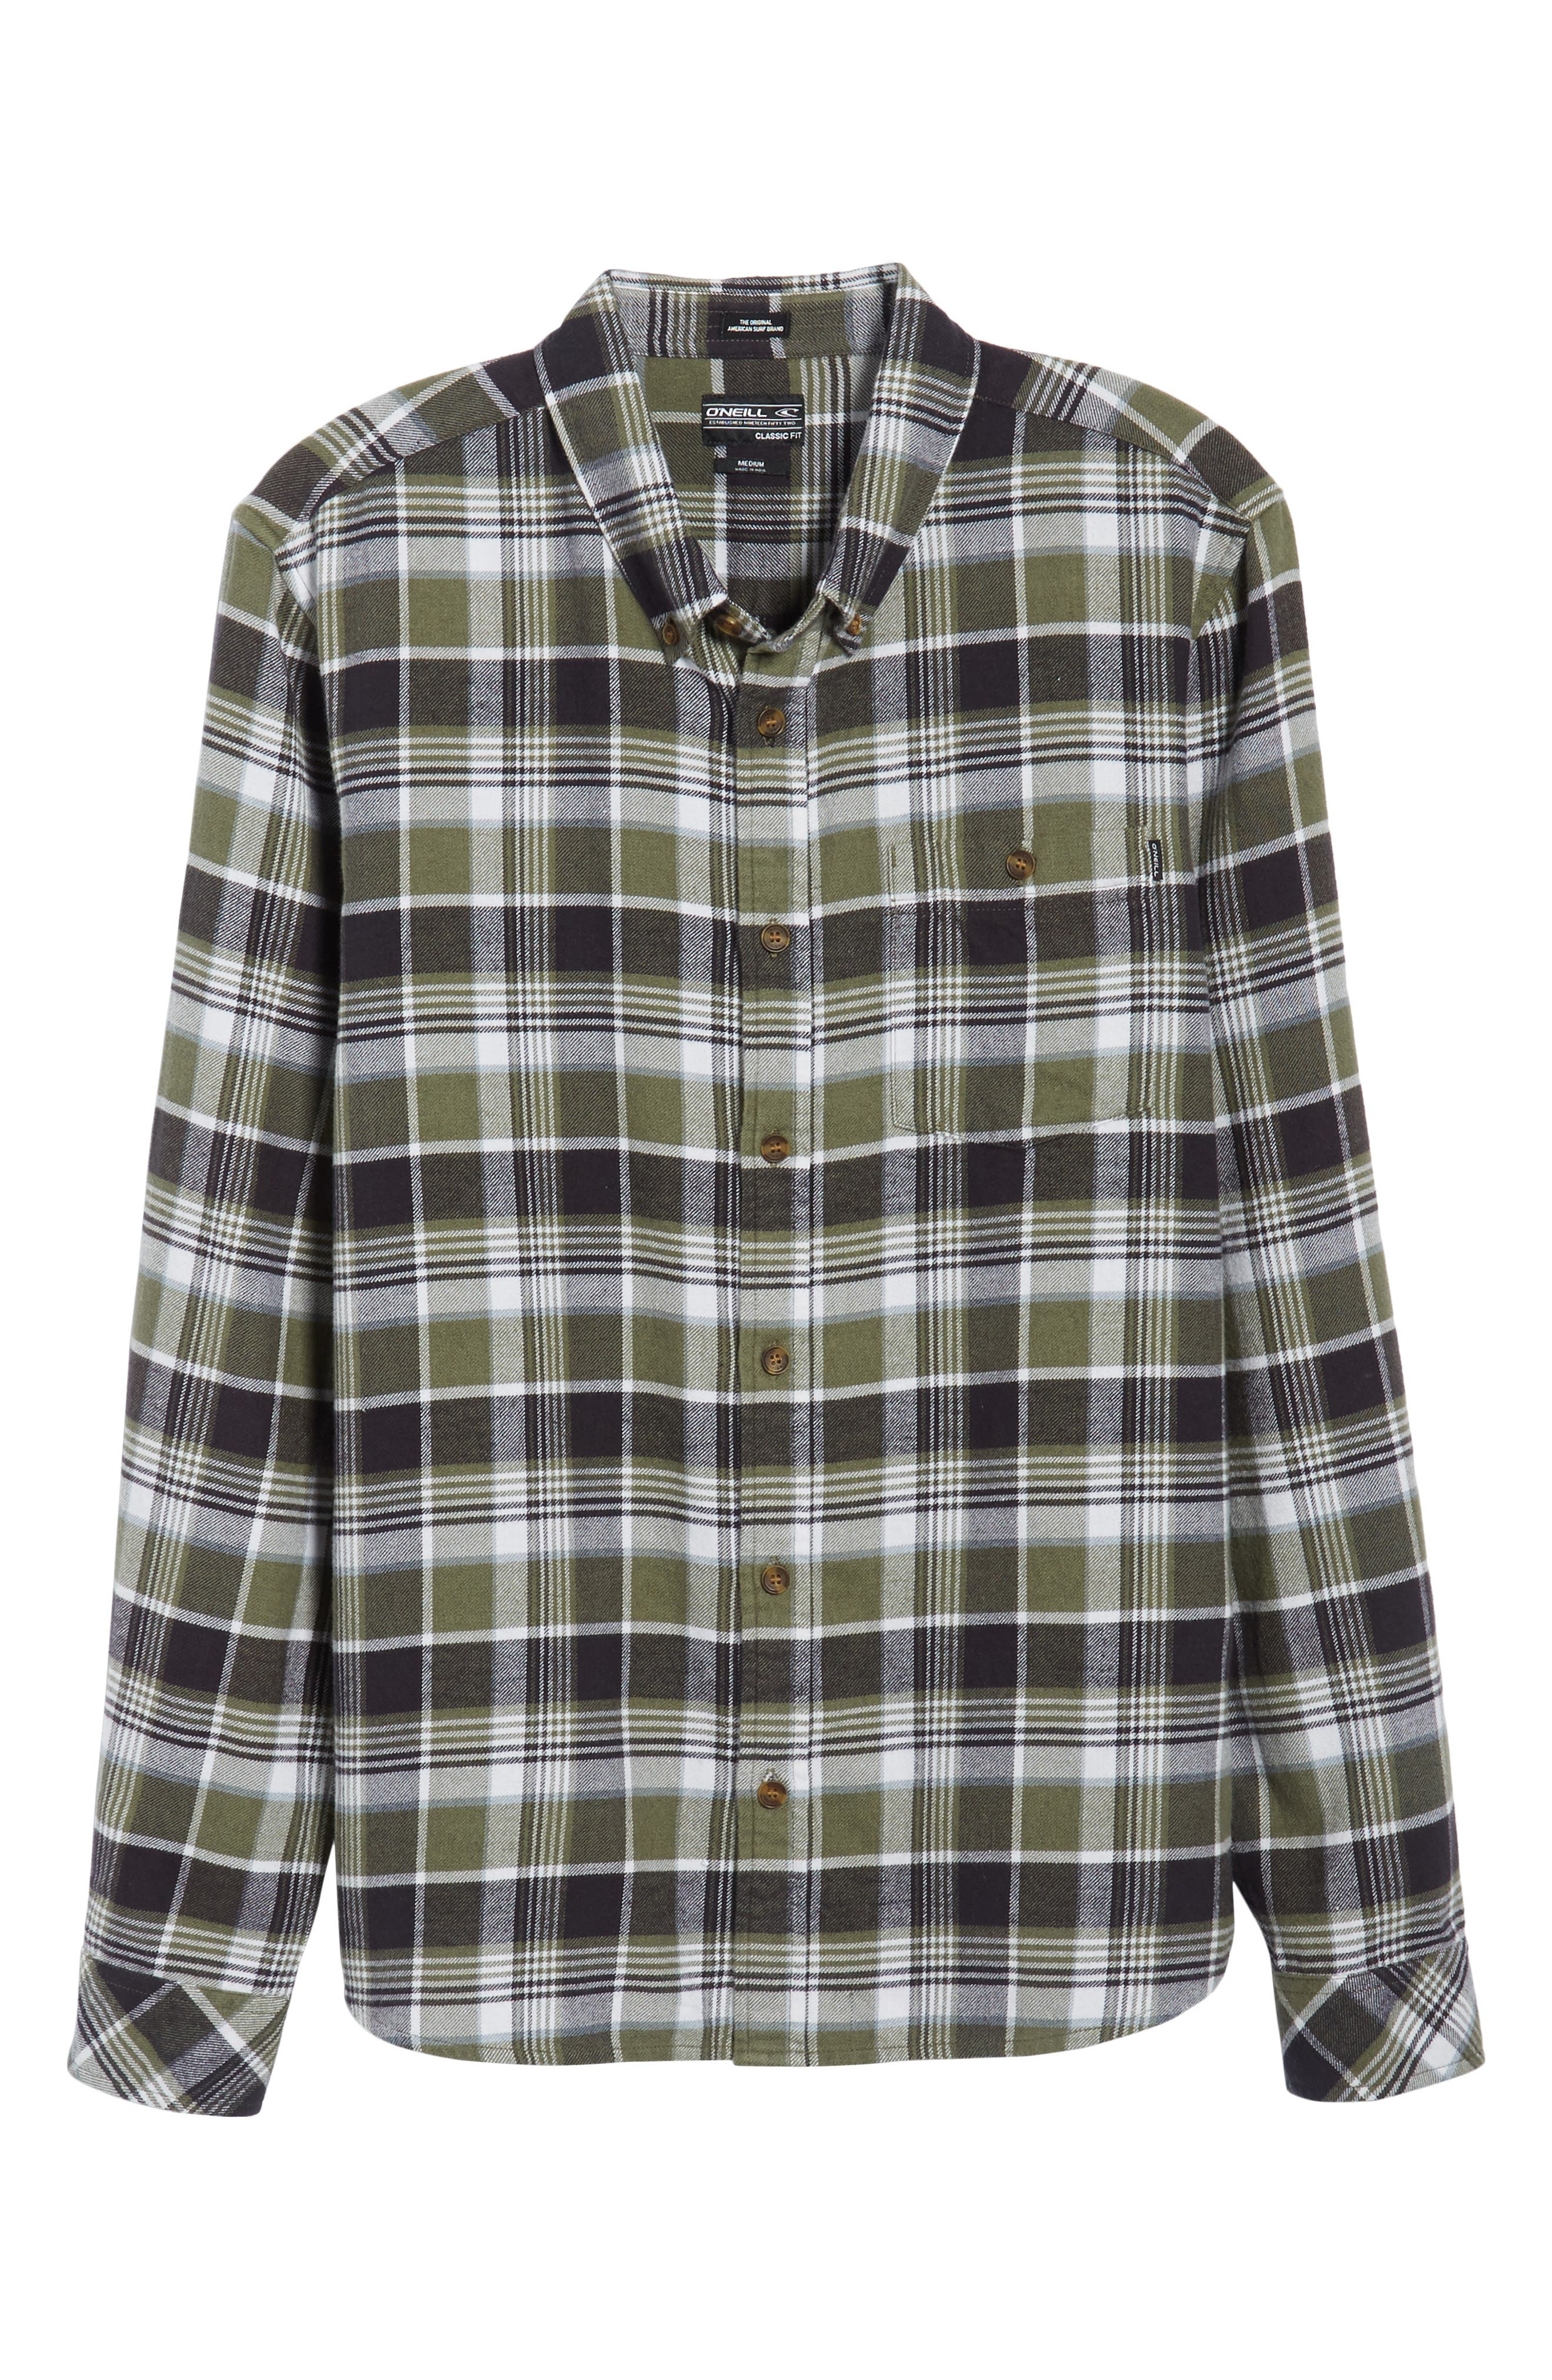 Redmond Regular Fit Plaid Flannel Shirt,                             Alternate thumbnail 6, color,                             301